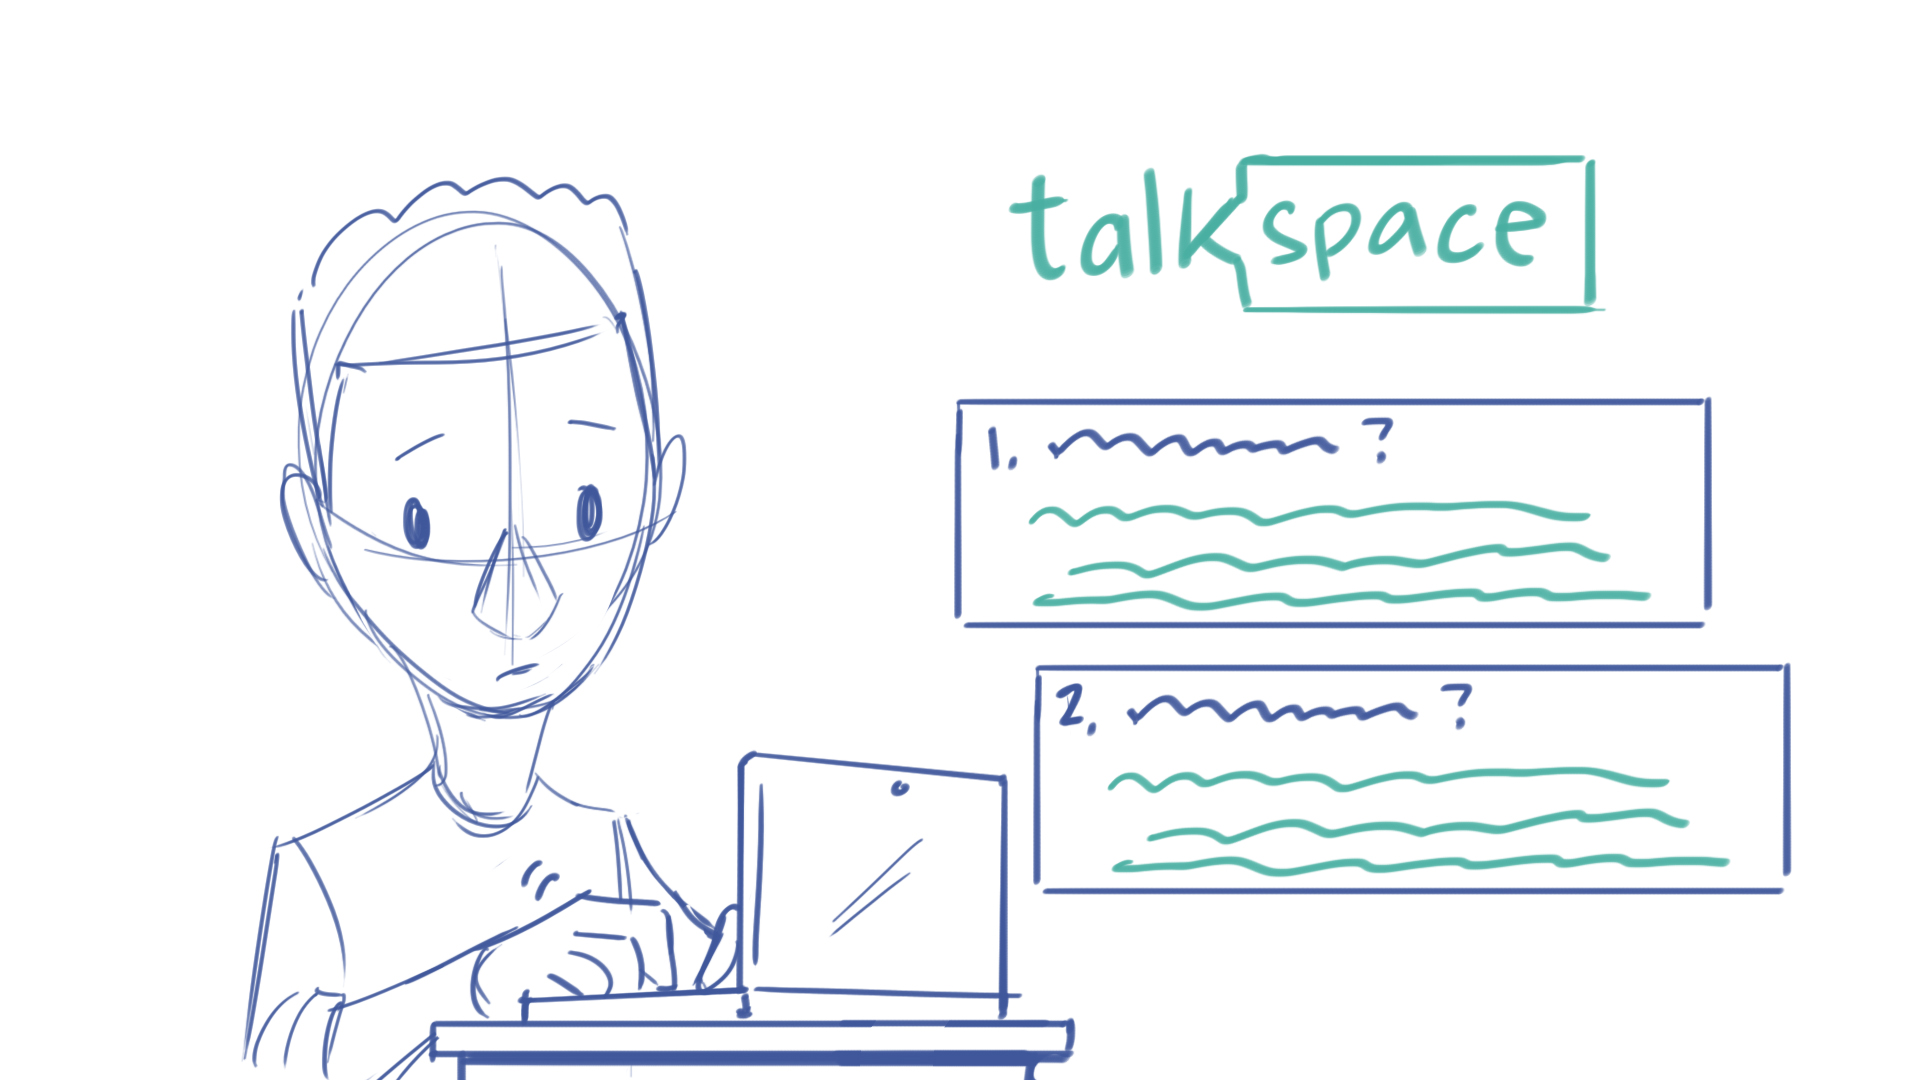 Talkspace_v3_0016_M.jpg